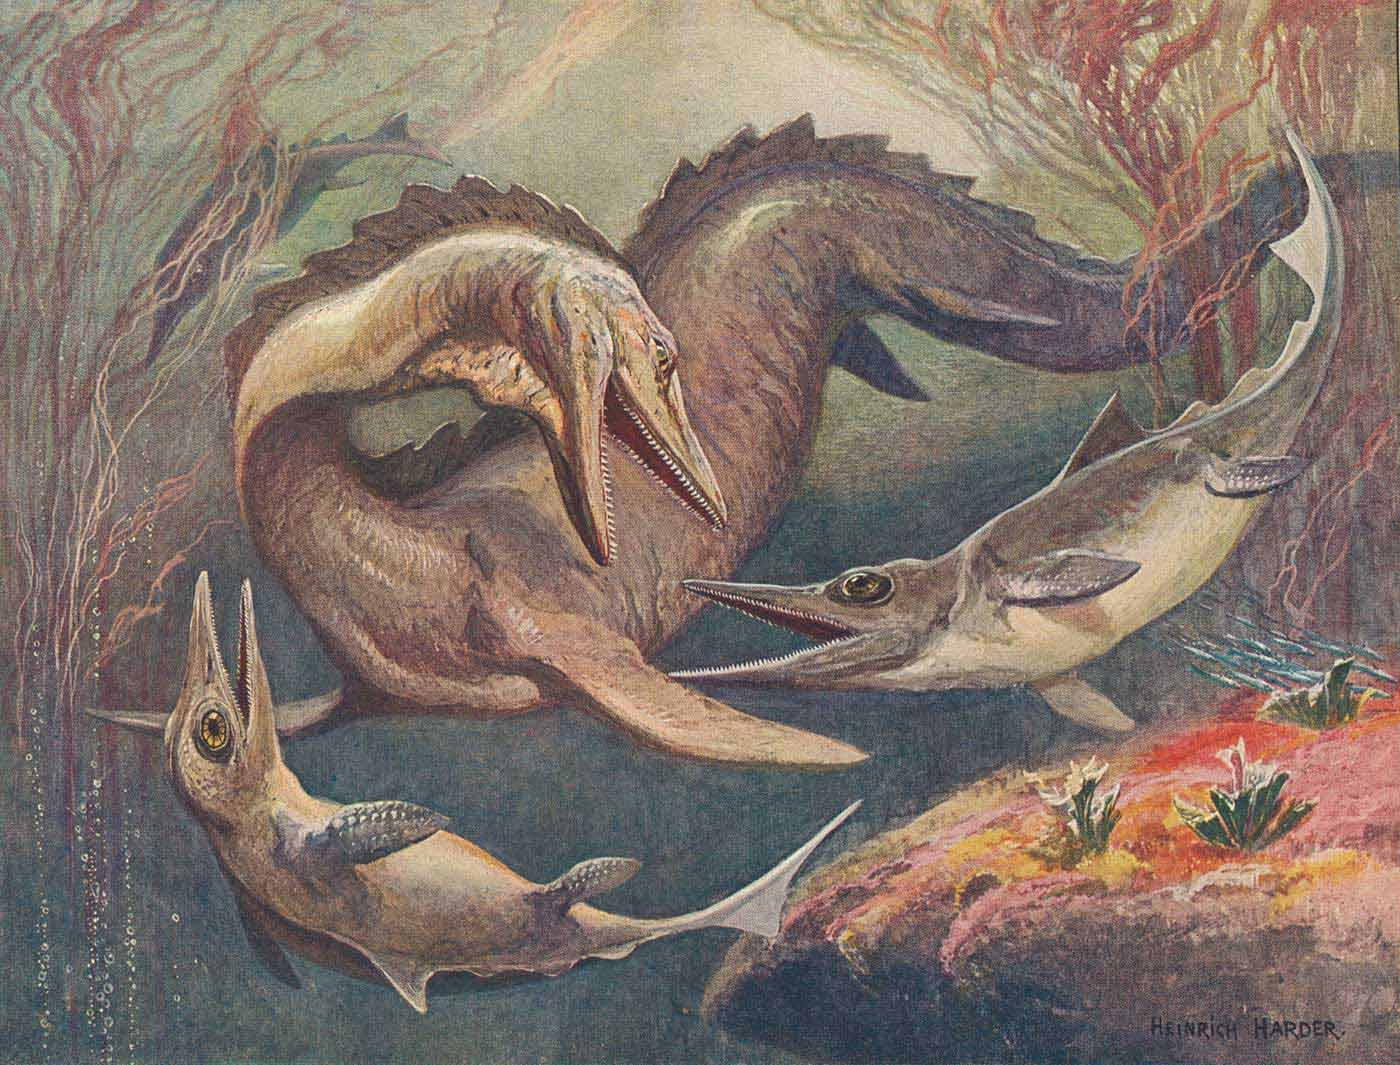 Colour illustration of three marine reptiles. Two smaller animals are dophin-like in appearance, with oversized eyes. The third animal is much larger and has a longer body and tail. - click to view larger image